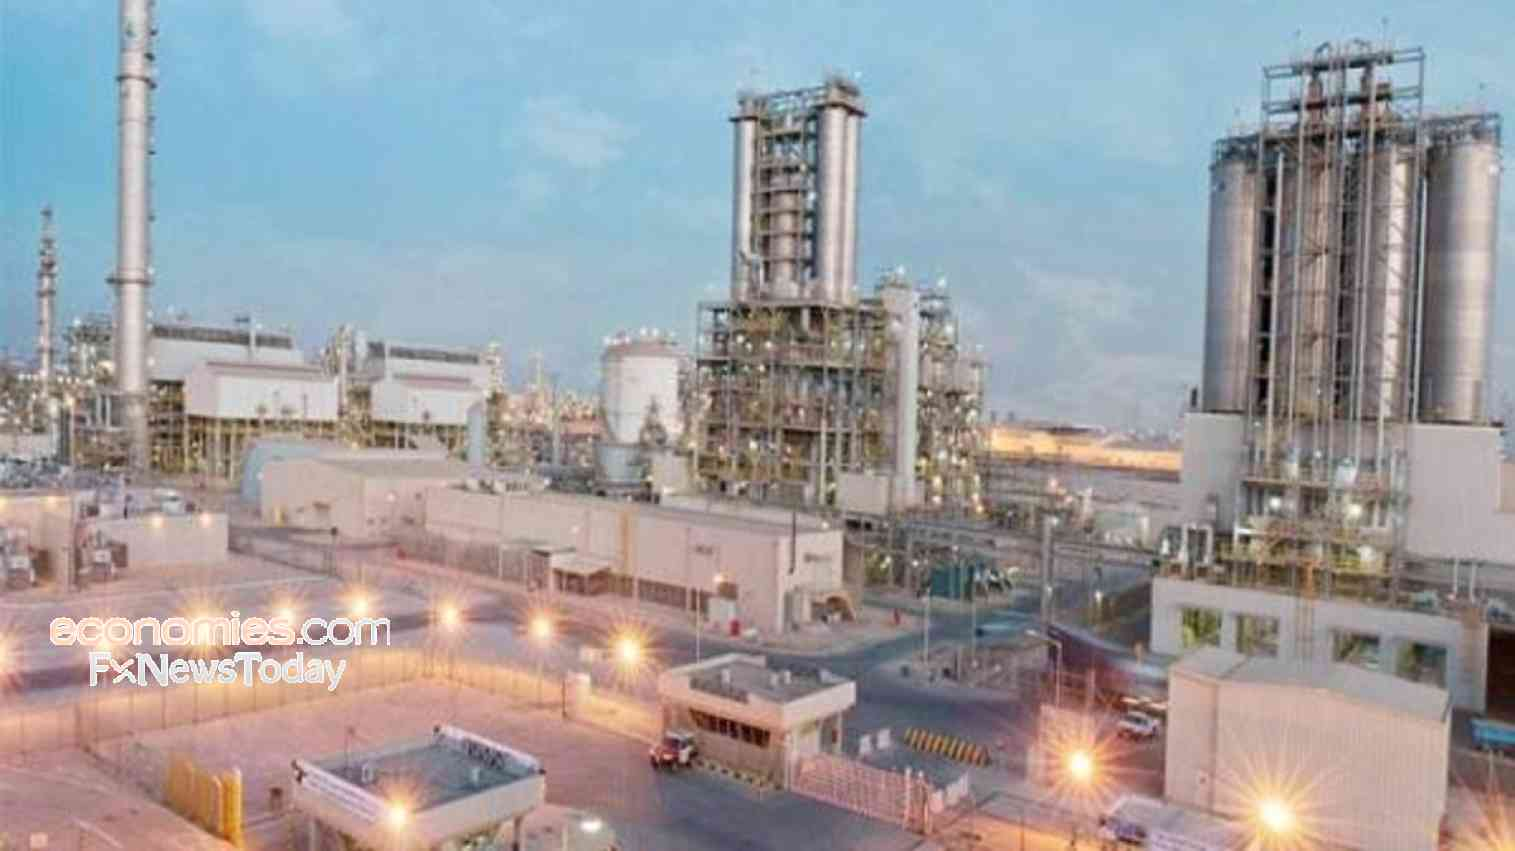 Advanced Petrochemical to distribute SAR0.70/share dividend April 8